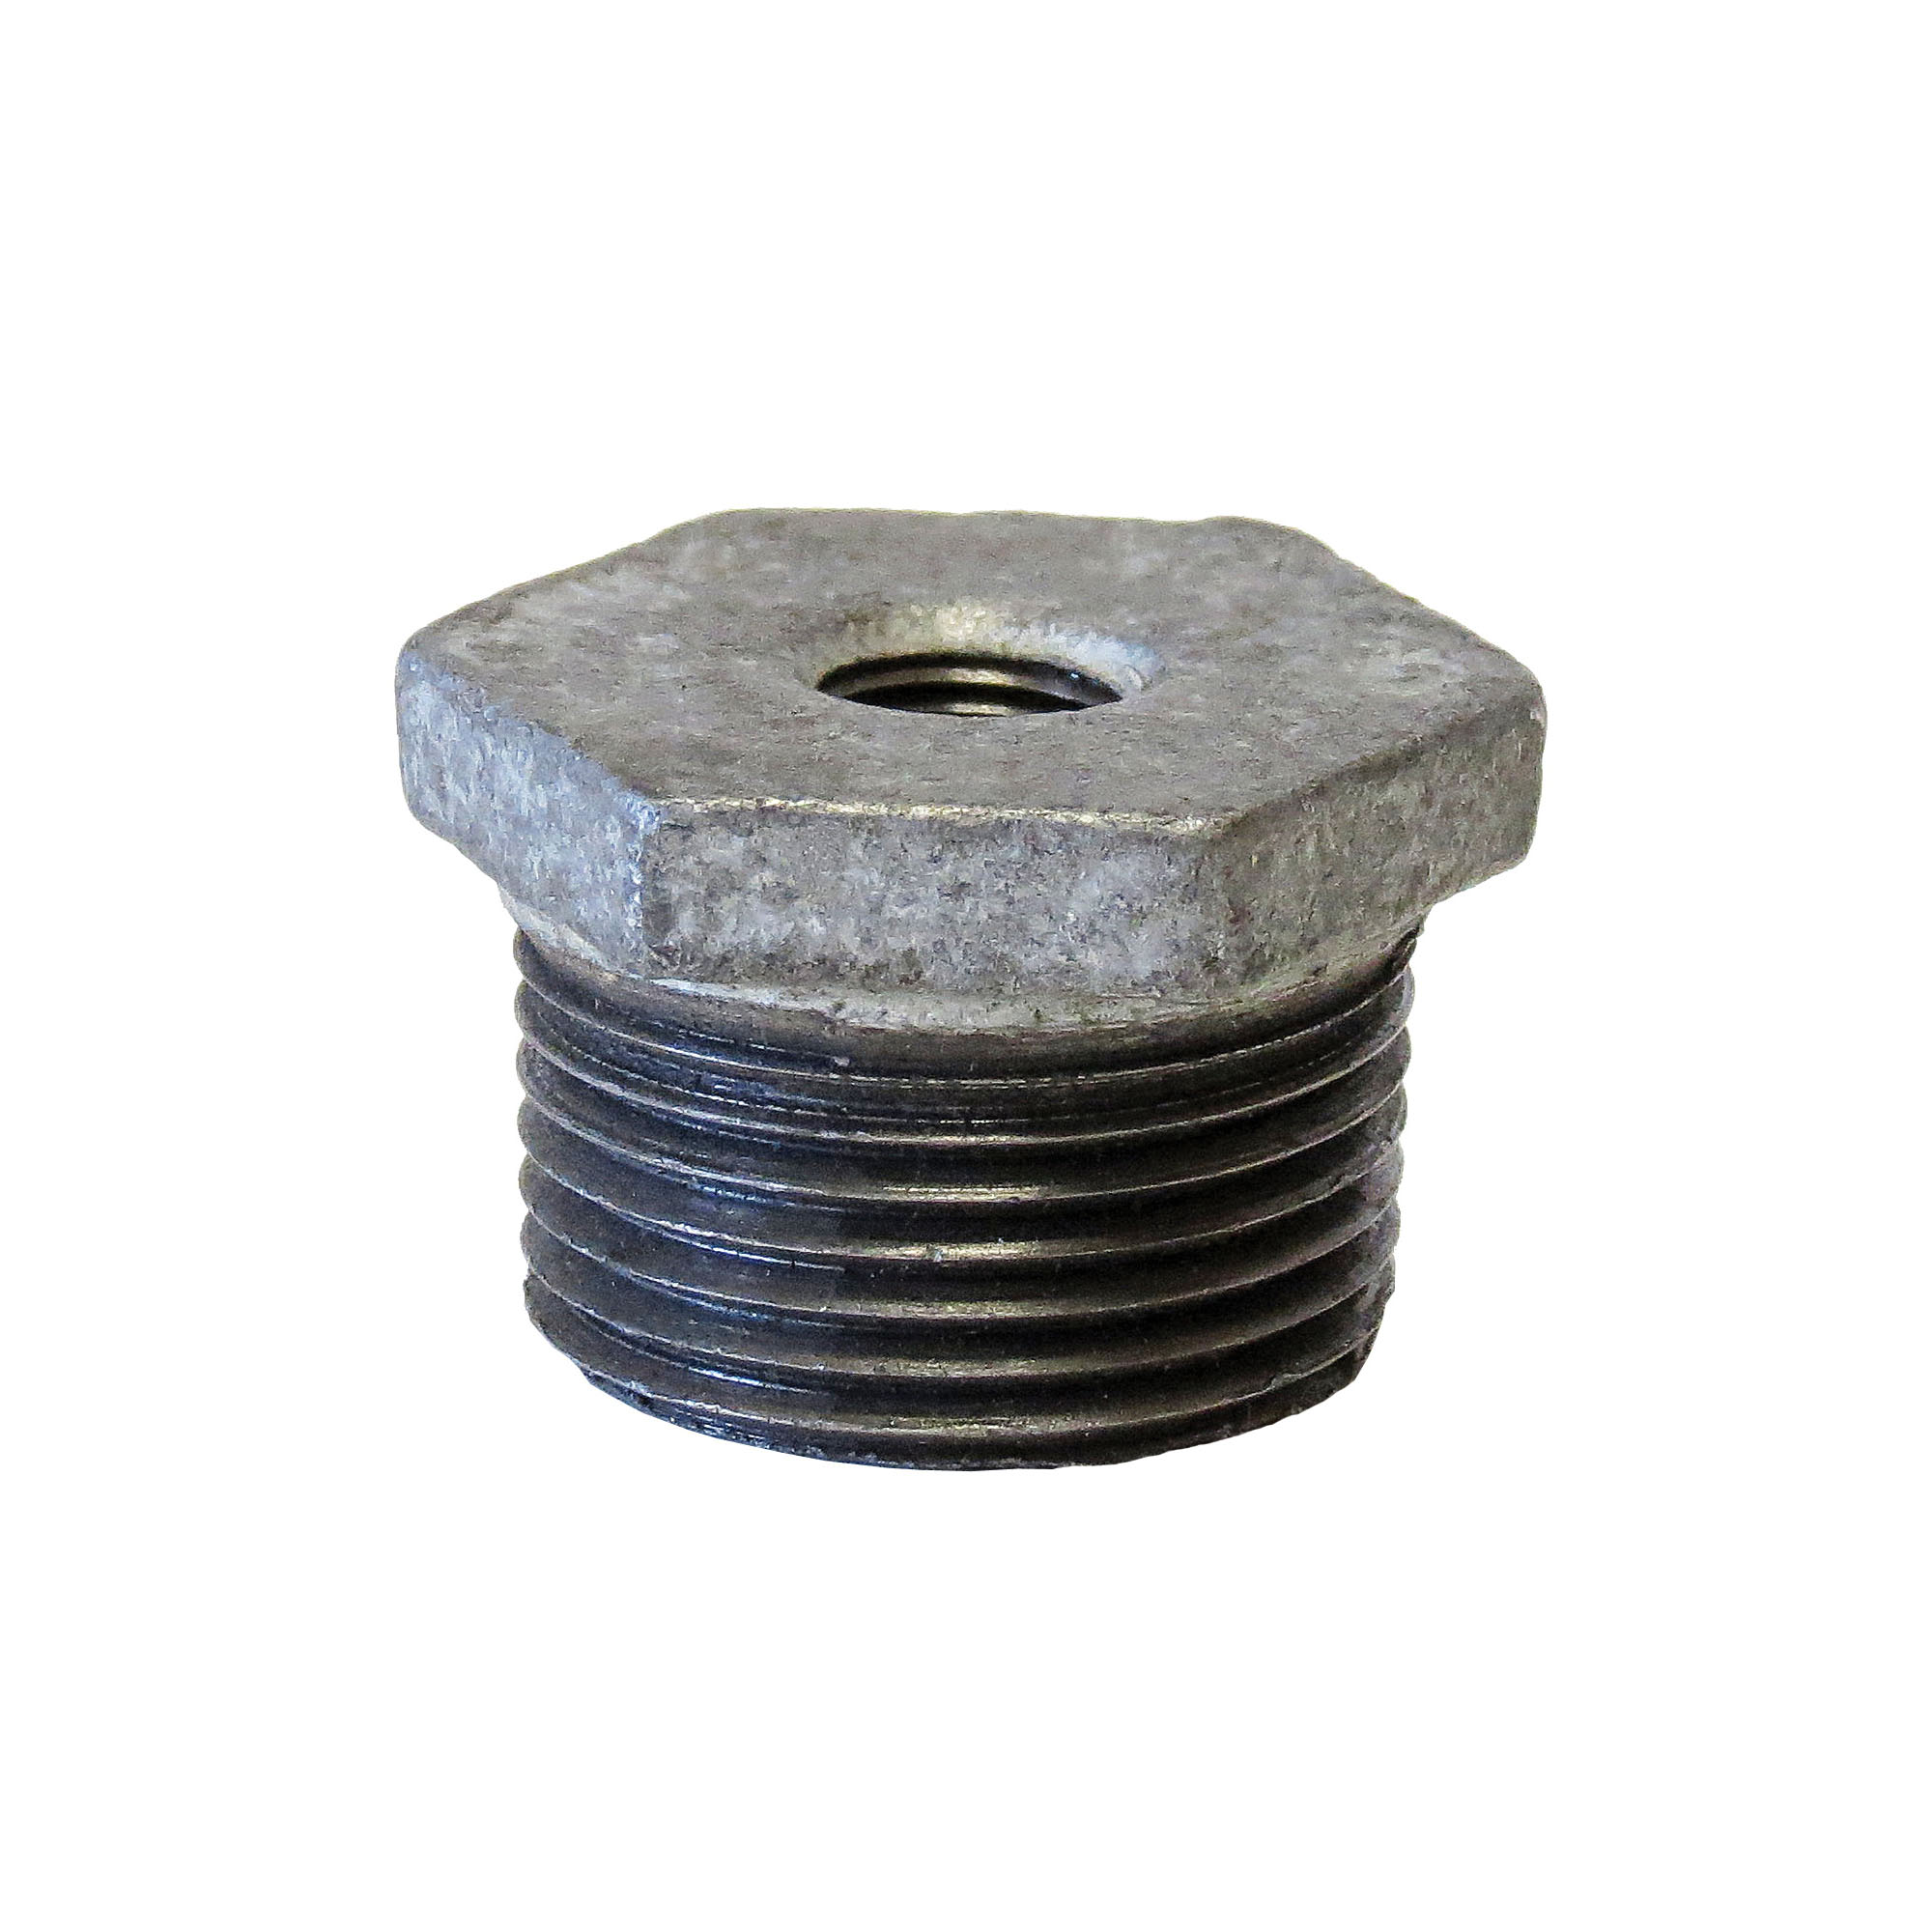 Anvil® 0319907762 Hex Head Pipe Bushing, 2 x 1 in Nominal, Cast Iron, Galvanized, Domestic